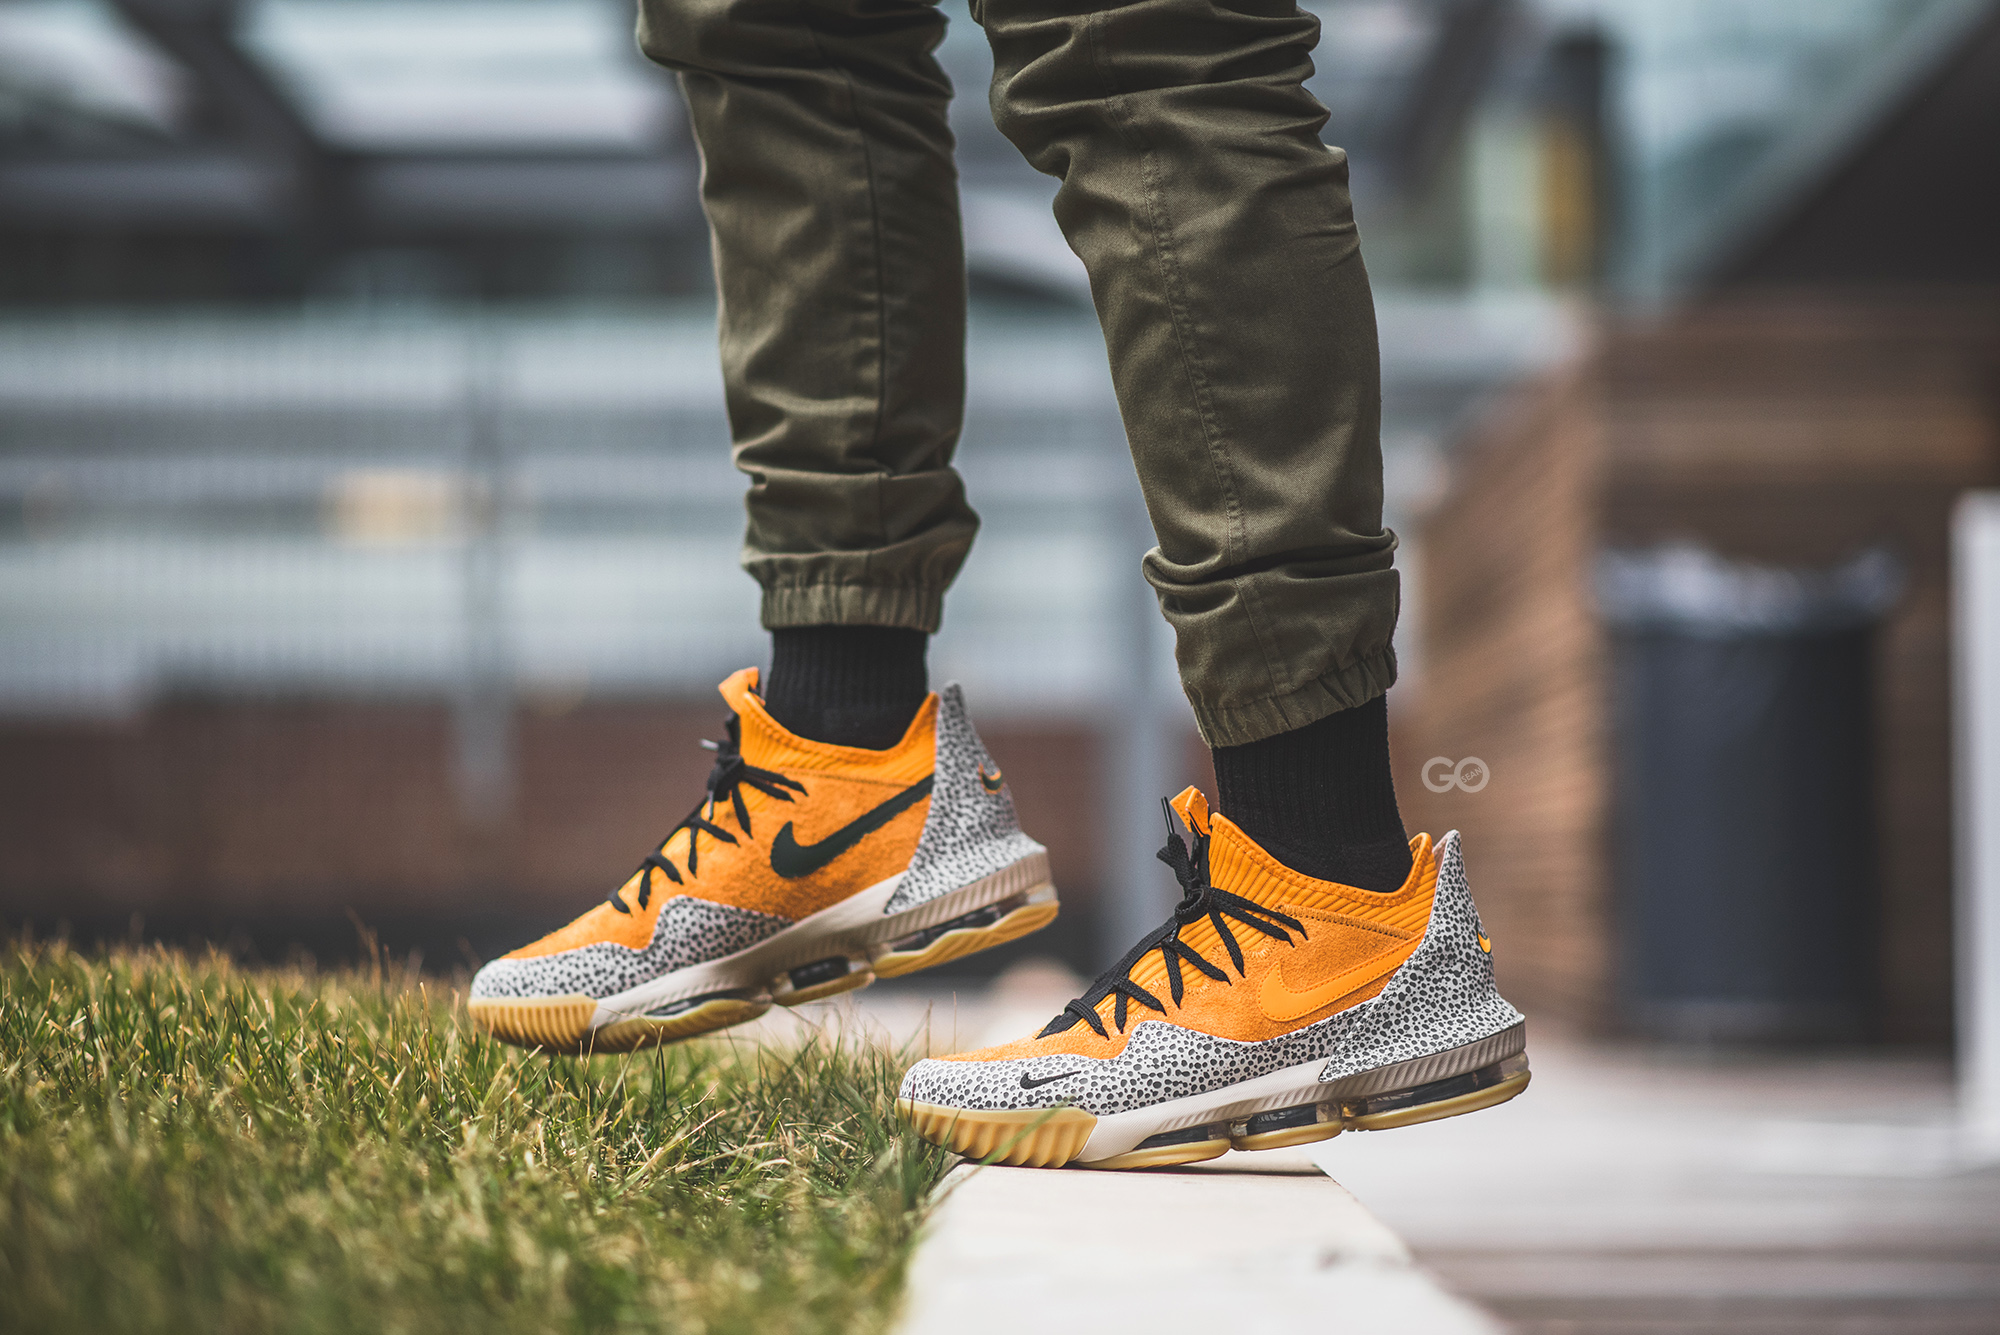 Nike LeBron 16 Low AC \u201cAtmos Safari\u201d Review \u2013 Sean Go